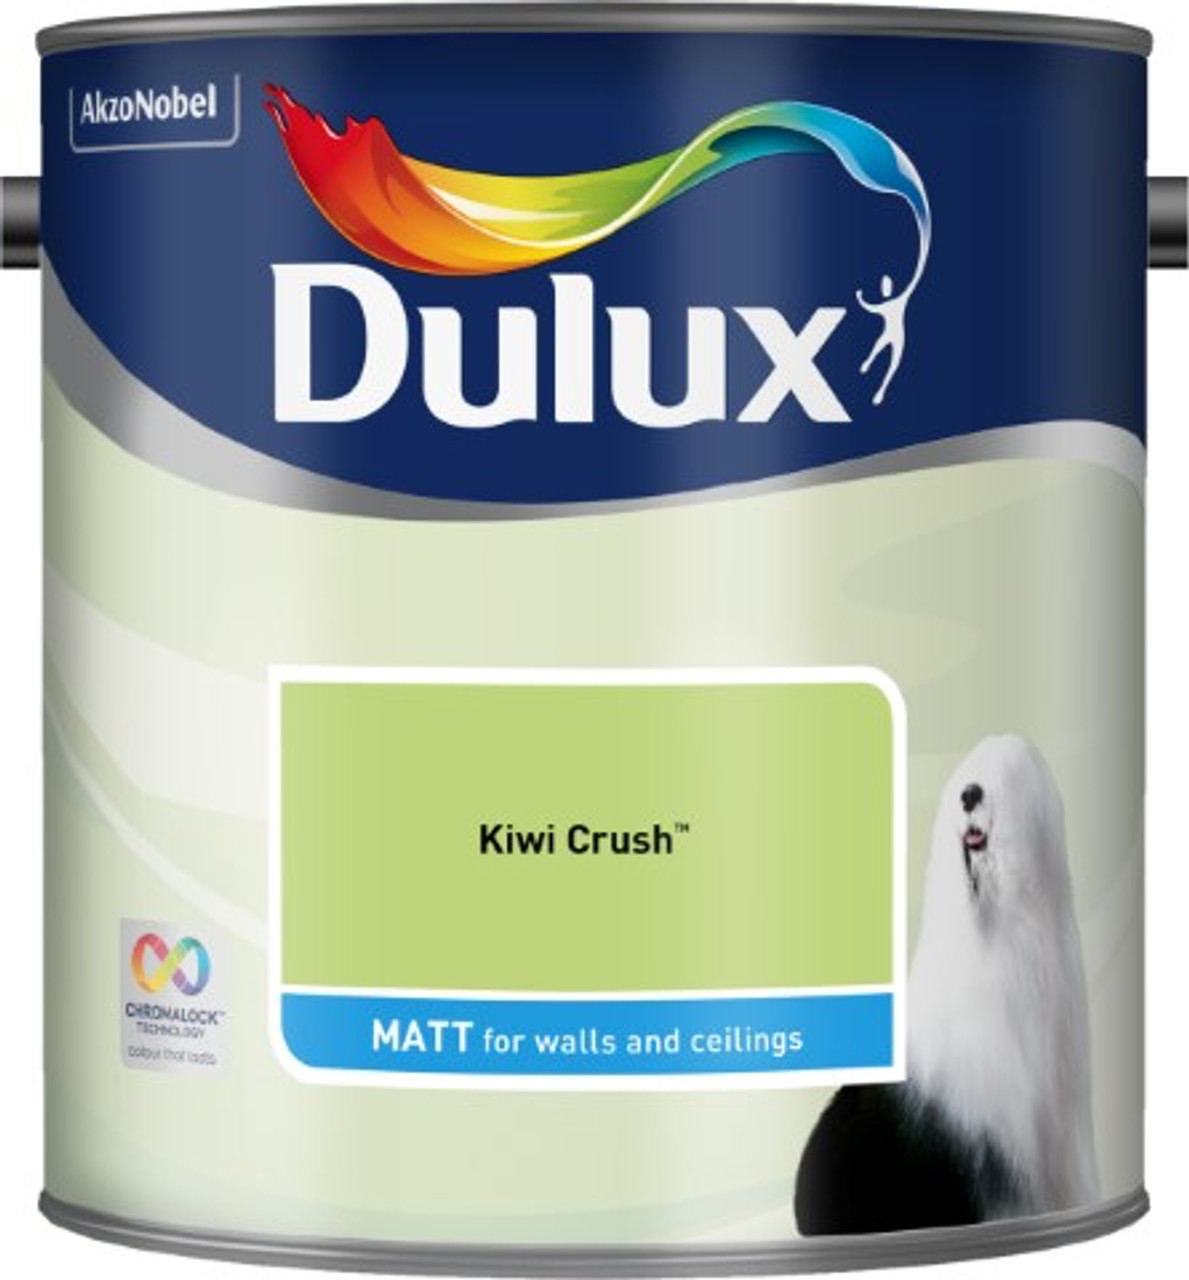 2.5L Dulux Matt Emulsion Kiwi Crush